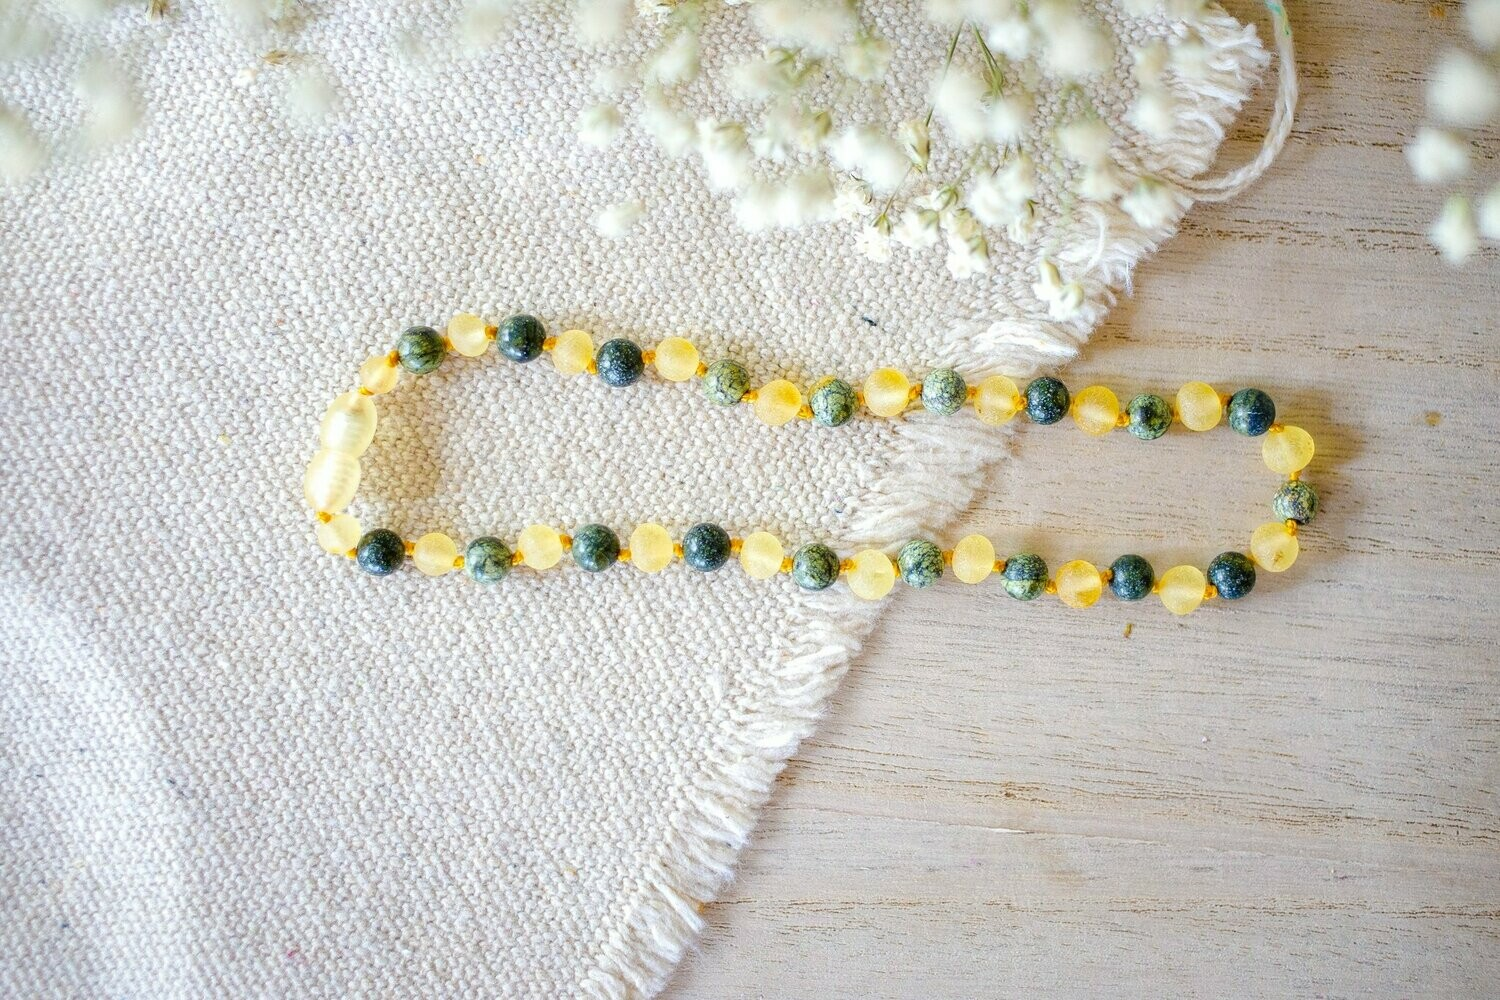 Green Lace Agate + Raw Lemon Baltic 12.5 inch